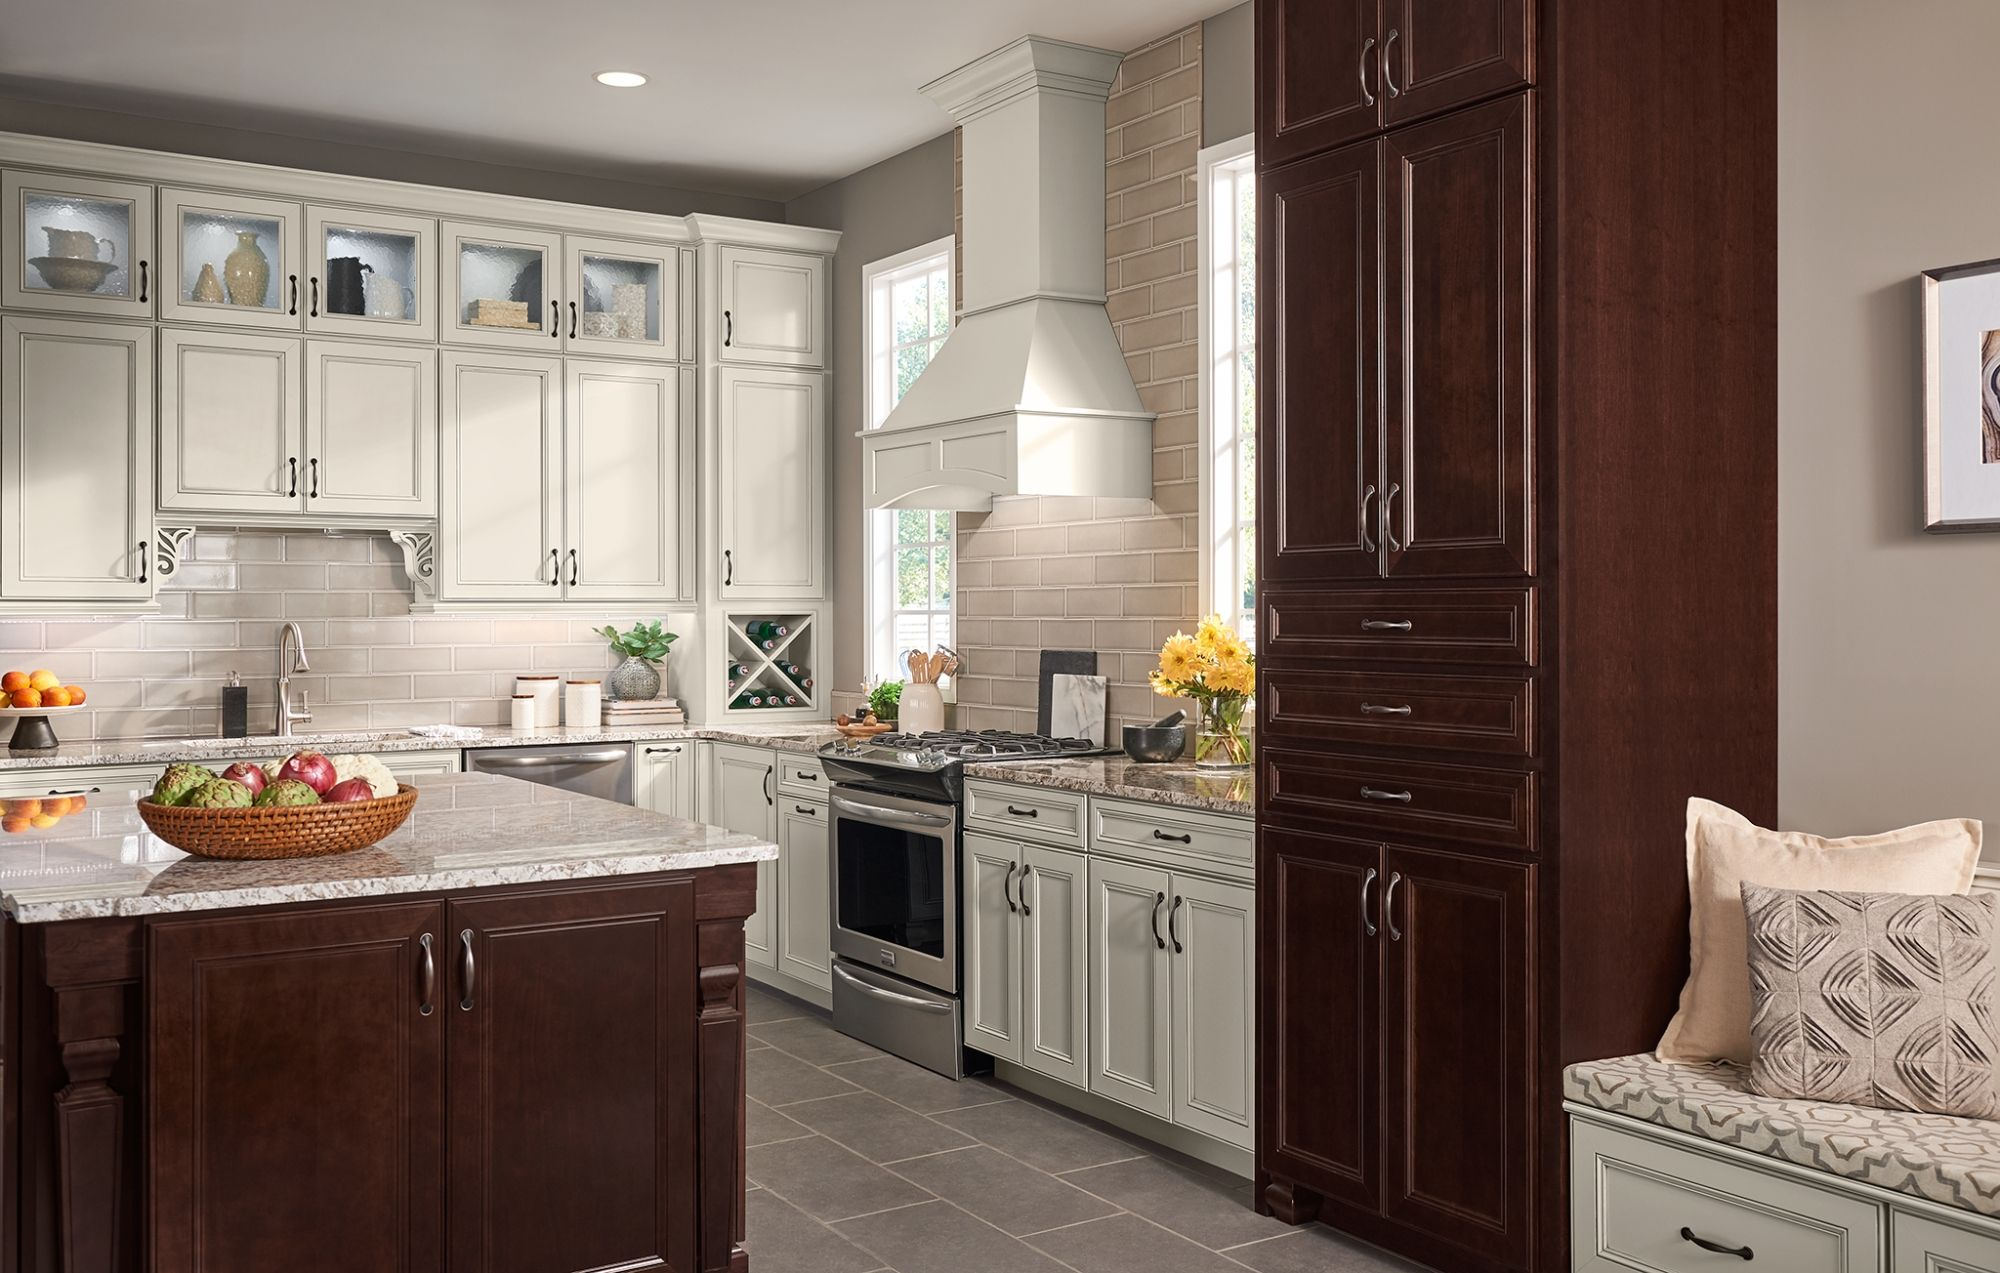 Macarthur American Woodmark Kitchen Plans Kitchen Inspirations American Woodmark Cabinets